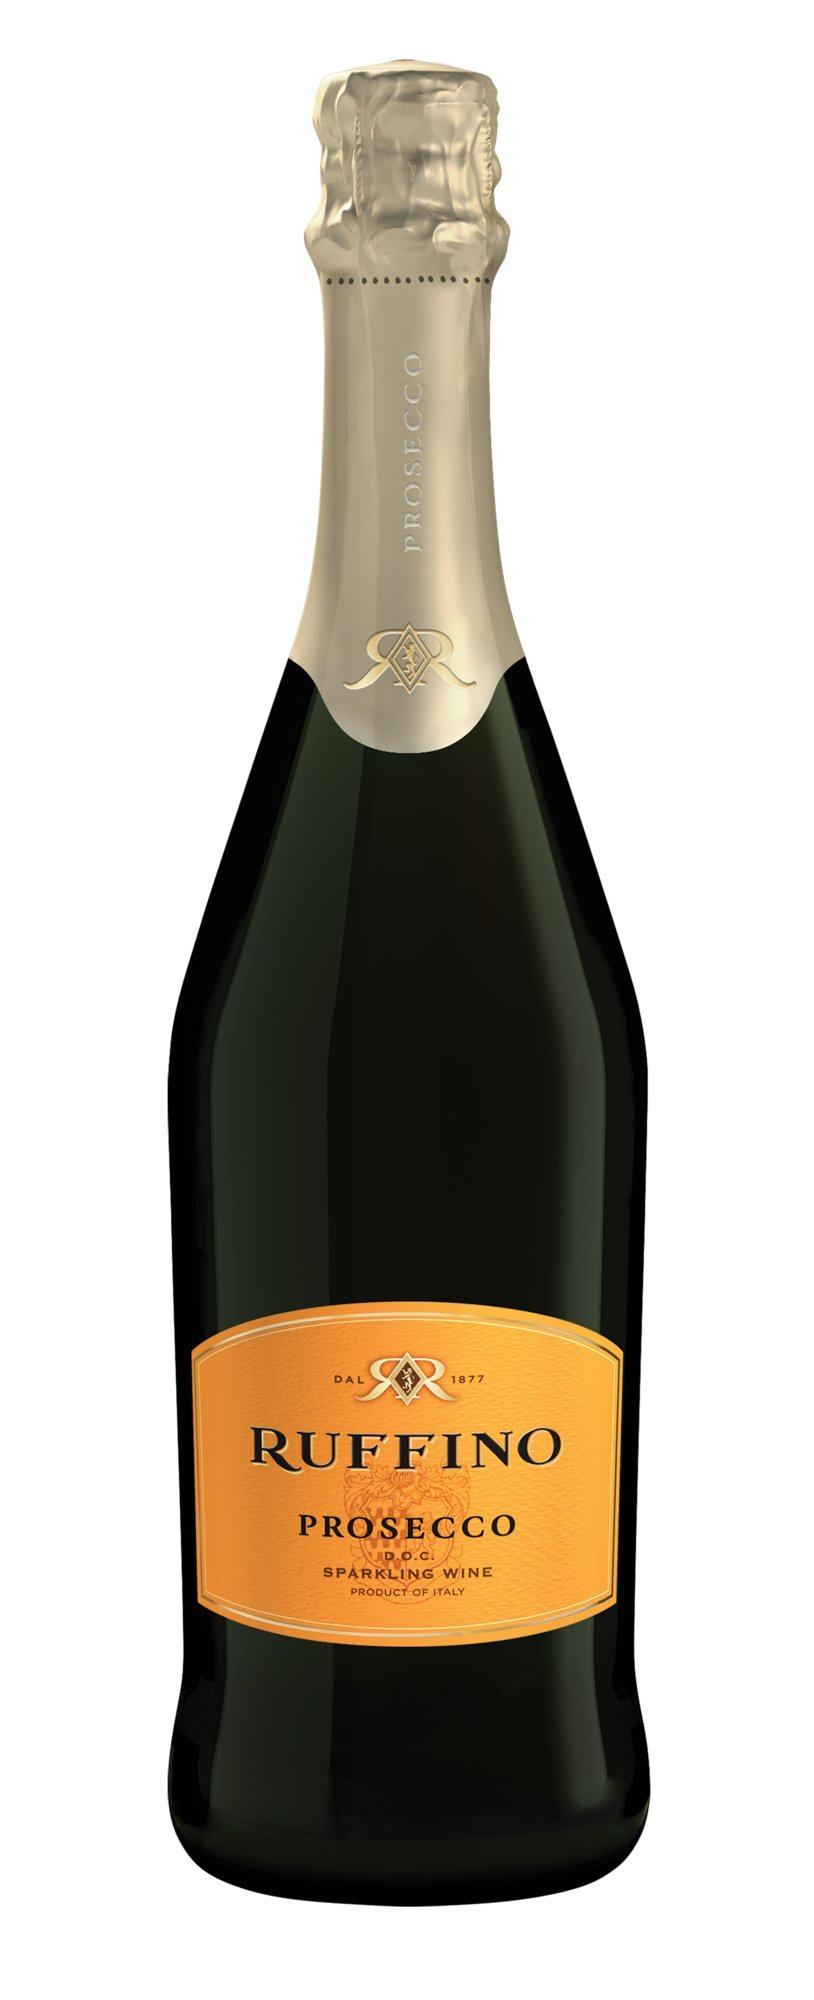 Ruffino Prosecco Sparkling Wine, 750mL Bottle